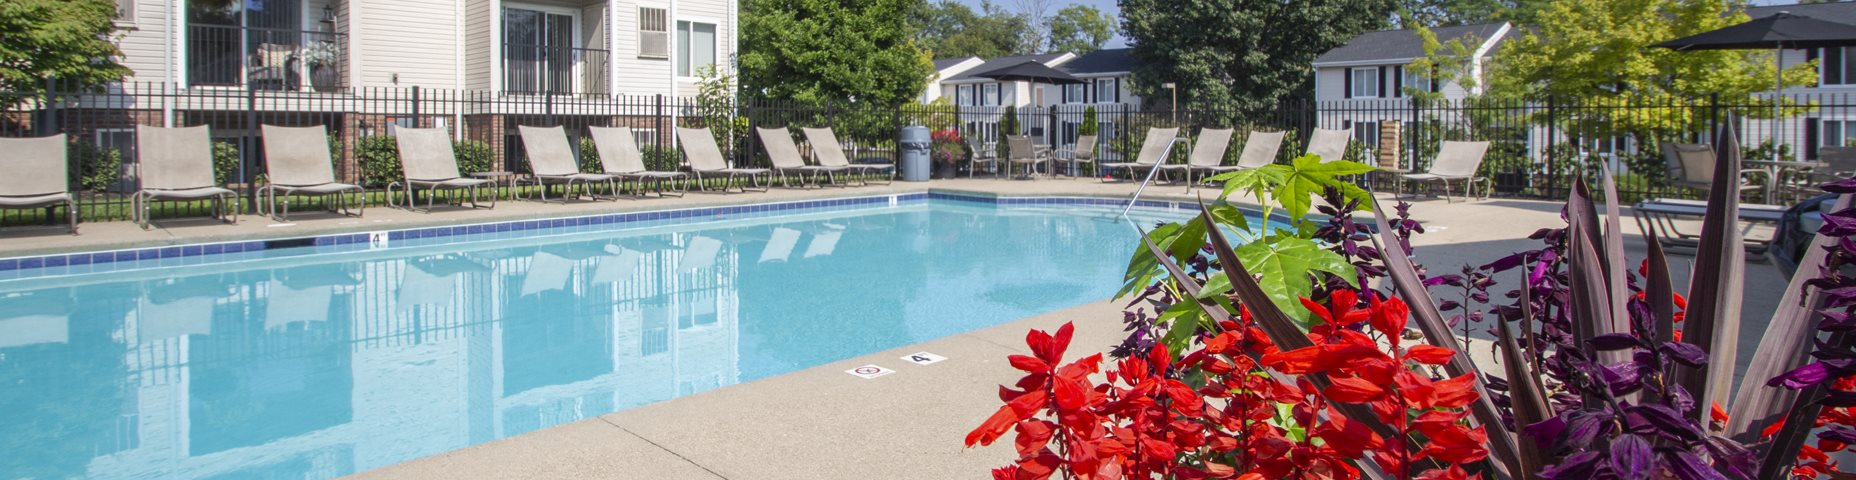 This is a picture of the pool area and apartment balconies at Deer Hill Apartments in Cincinnati Ohio.